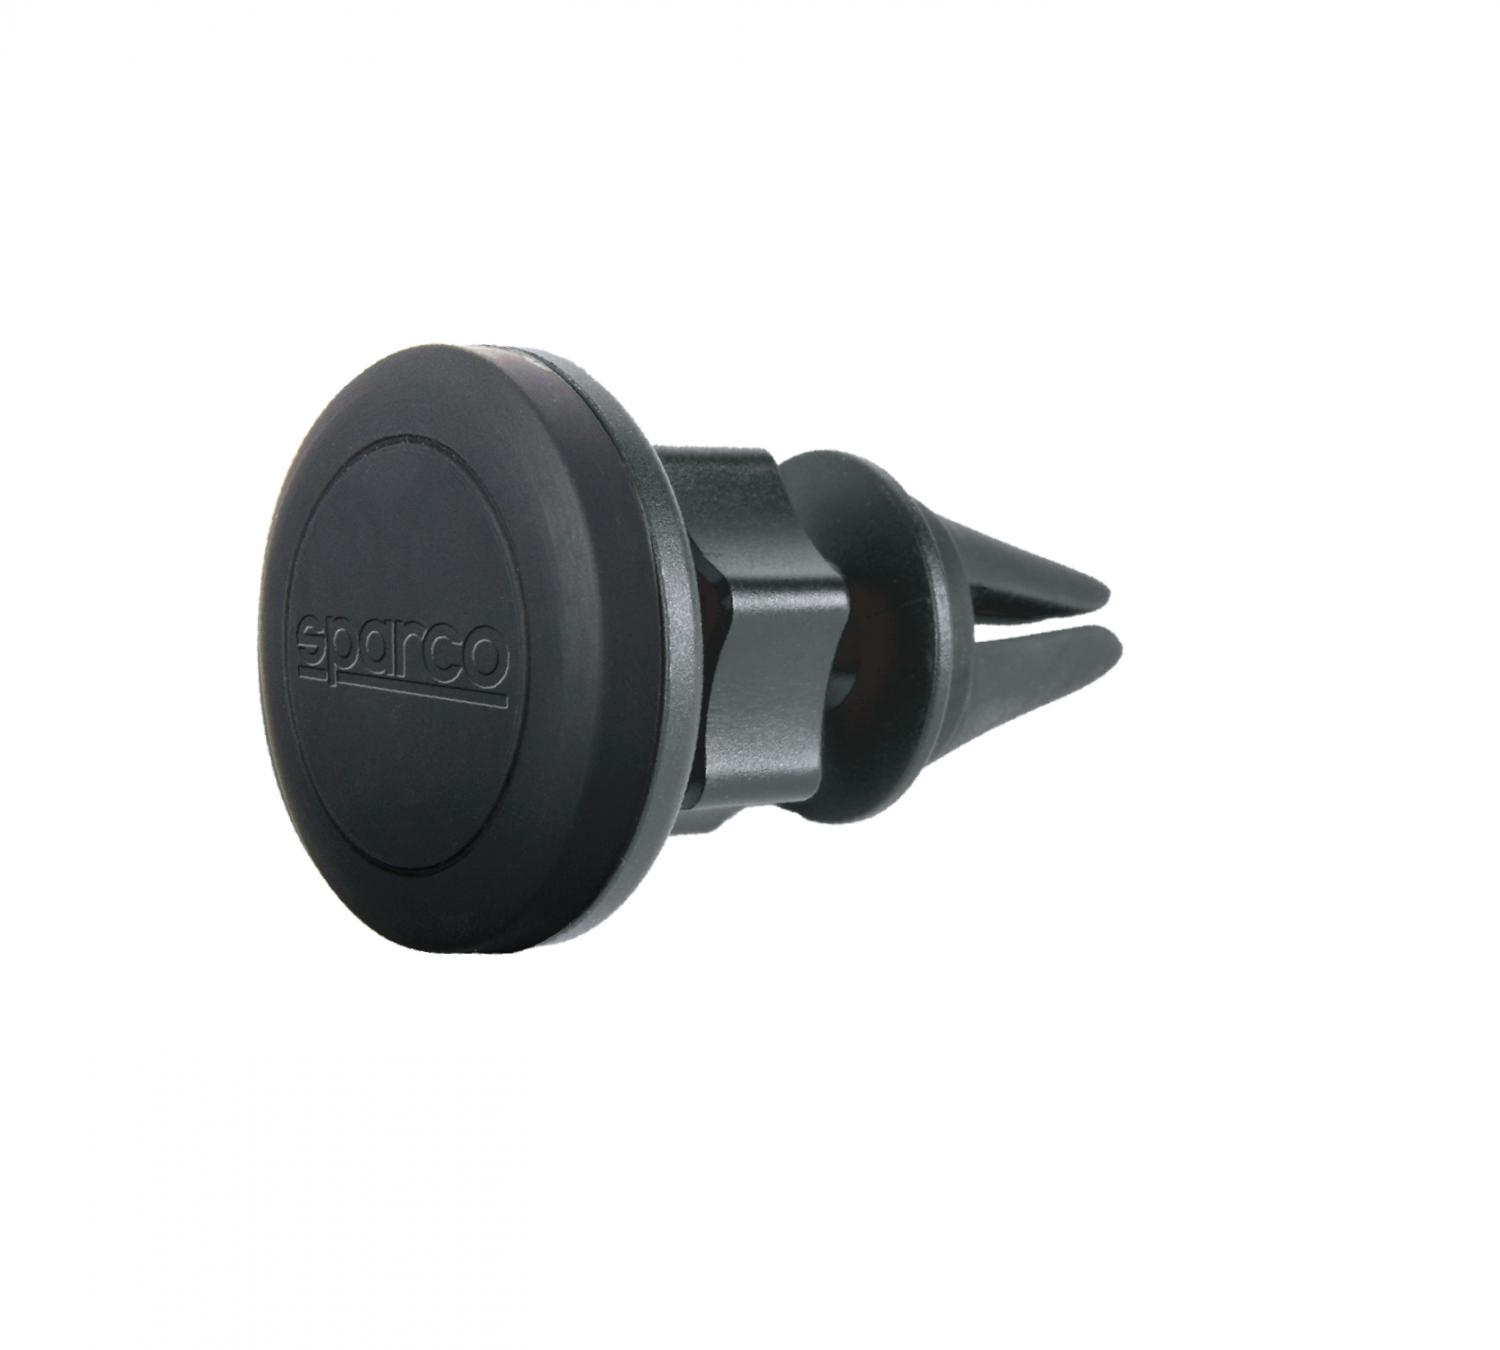 Magnetic mobilephone holder for air vent, Sparco